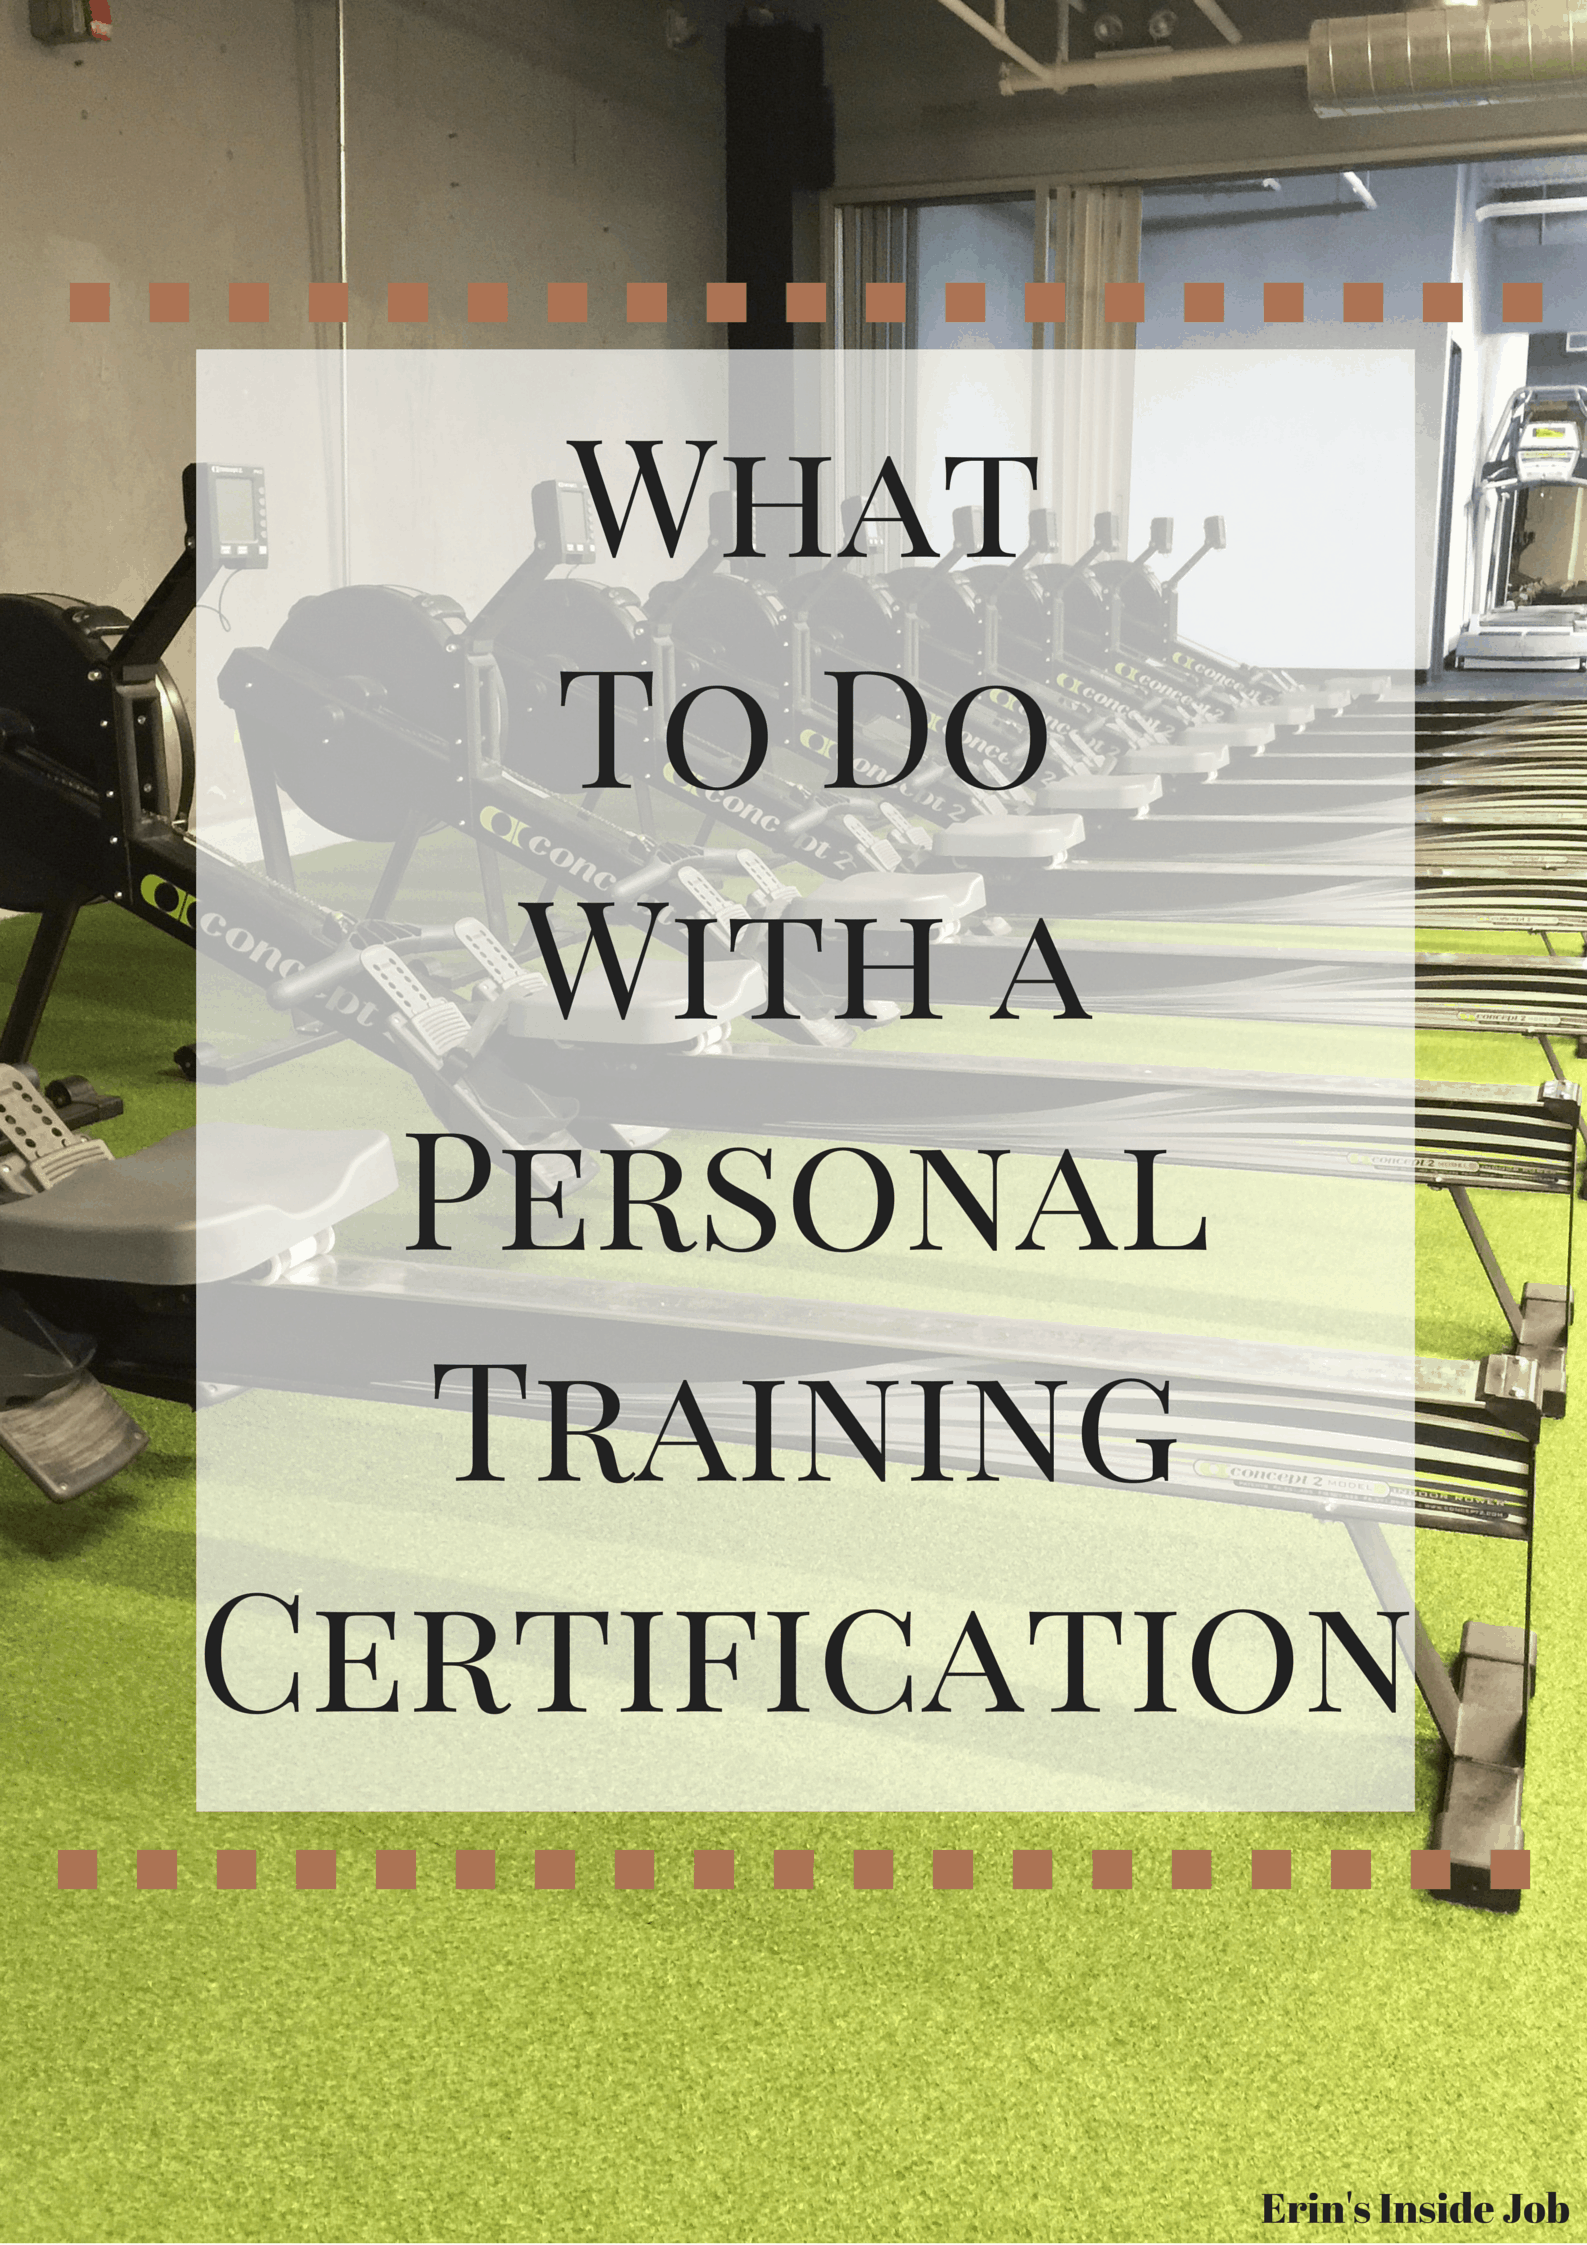 What to do with a personal training certification erins inside job what to do with a personal training certification xflitez Images